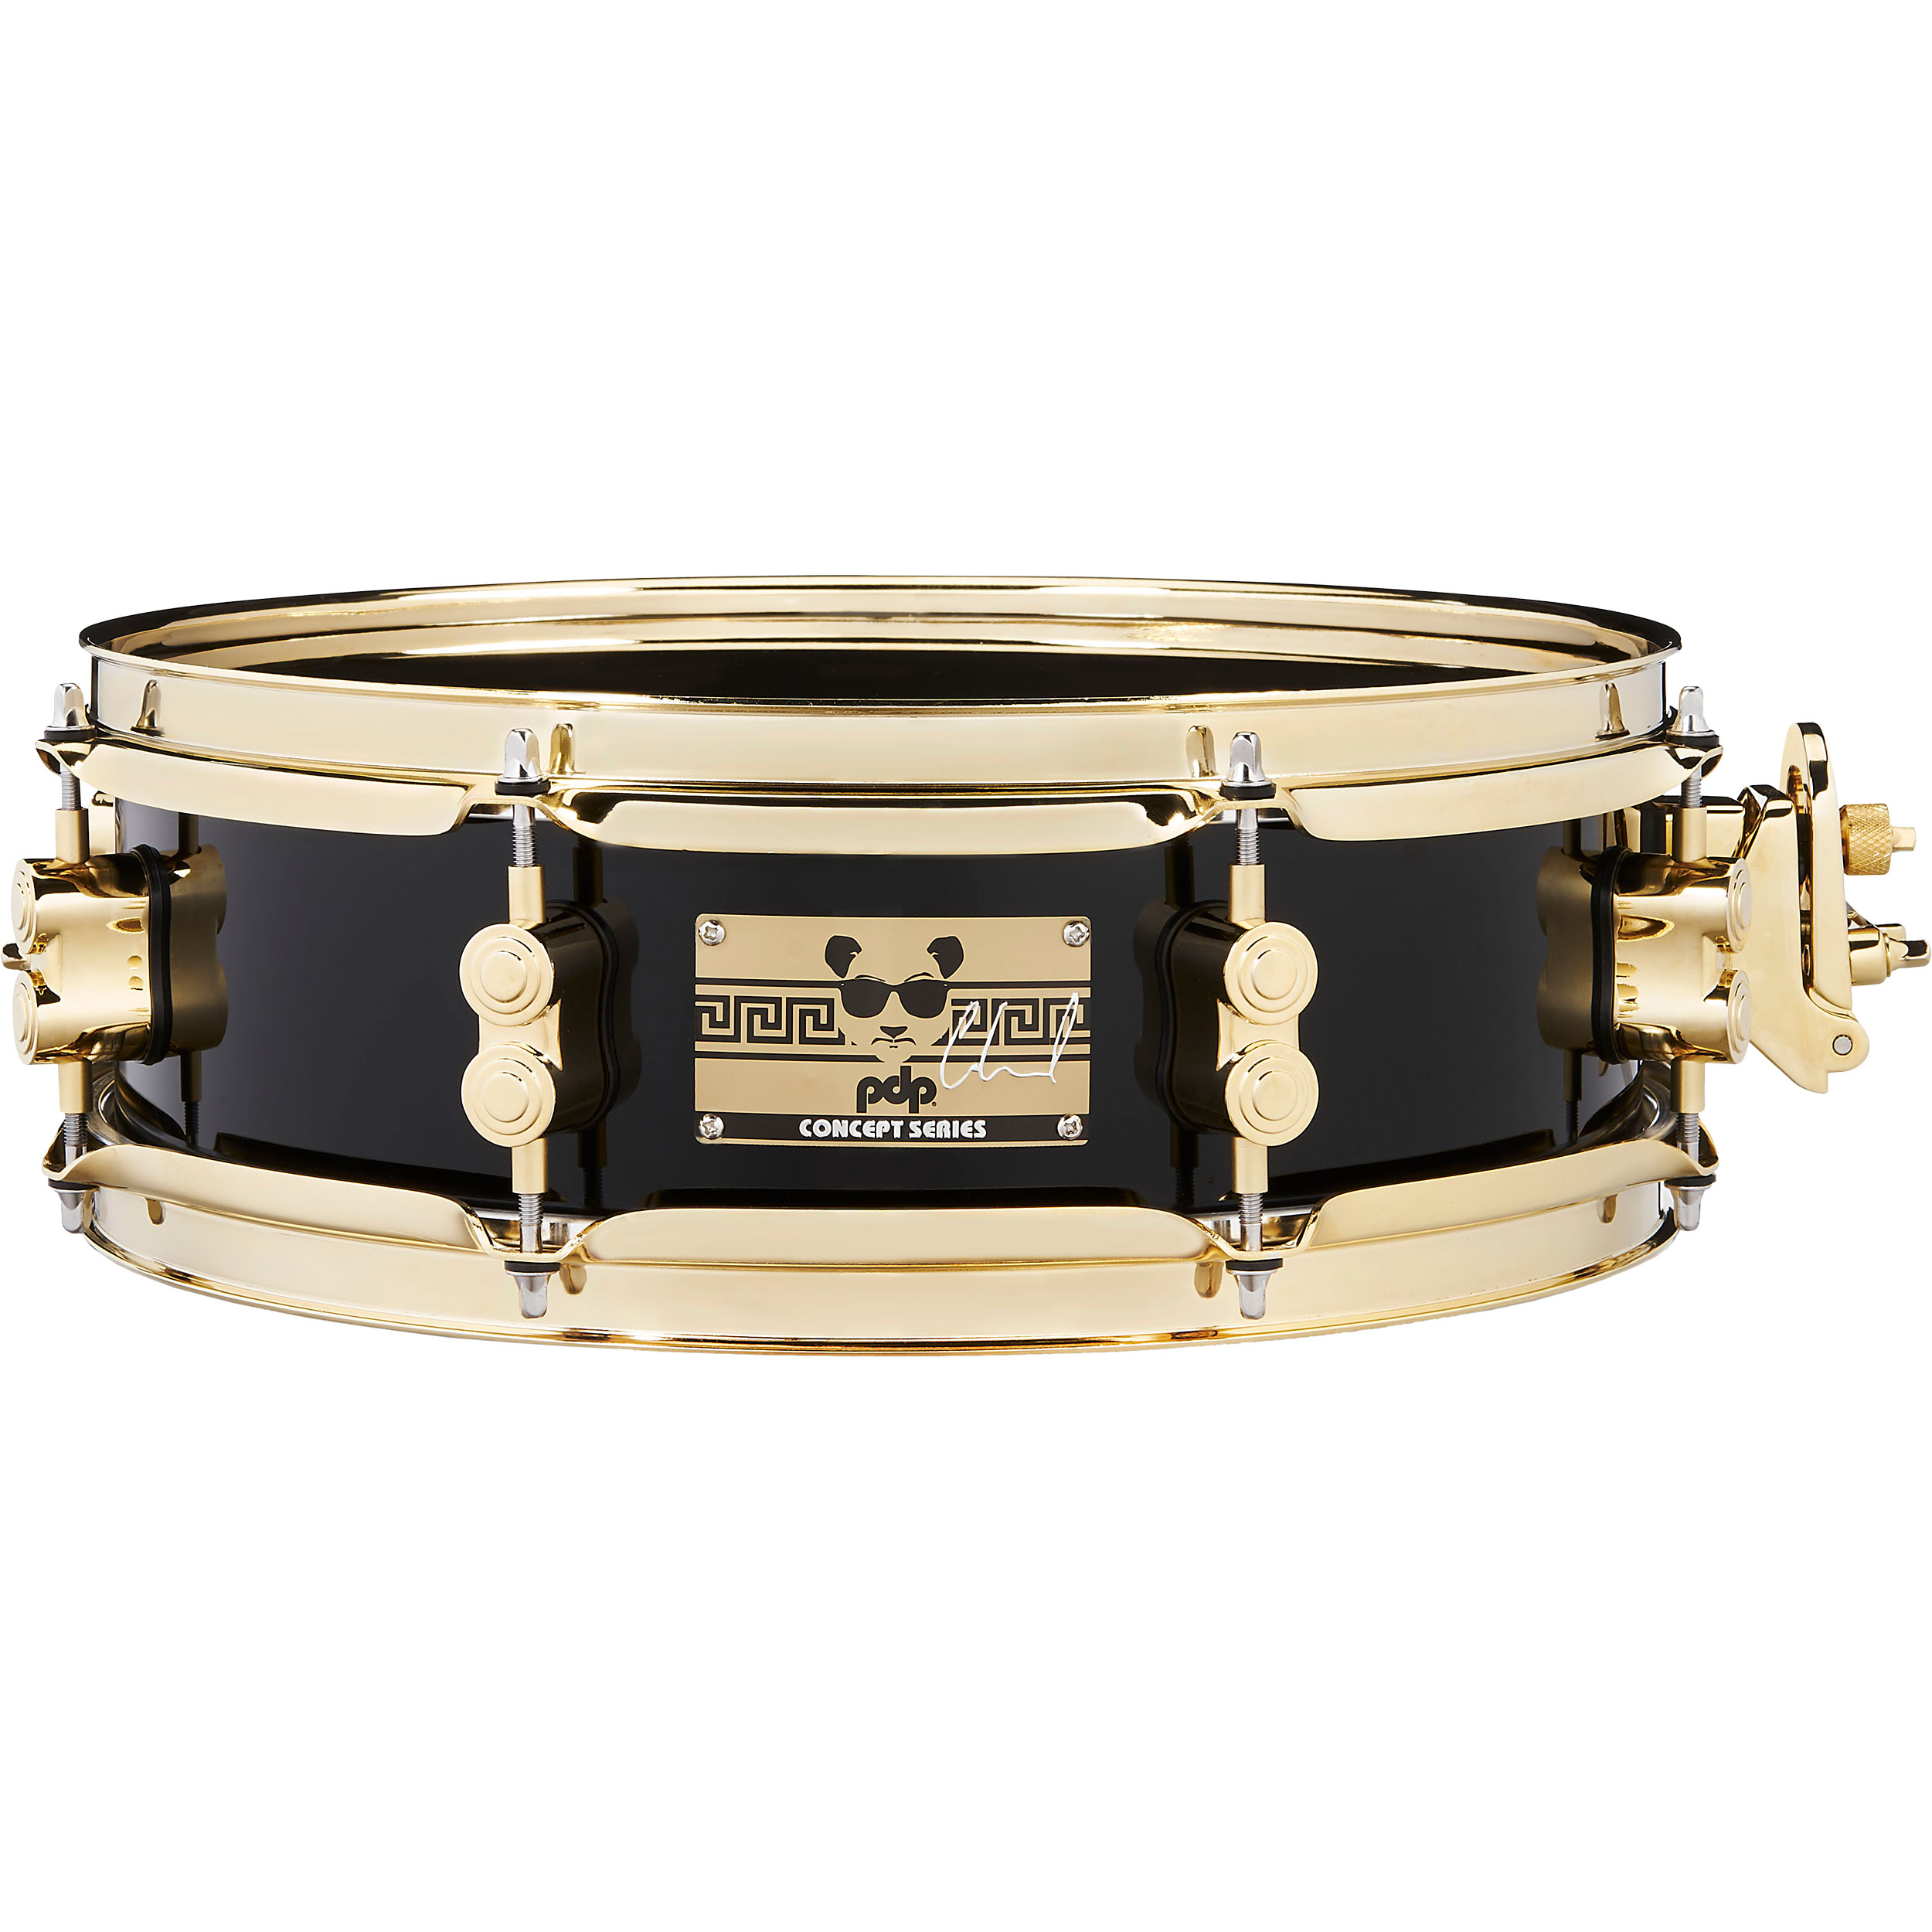 "PDP 4"" x 13"" Eric Hernandez Signature Maple Snare Drum with Gold Hardware"